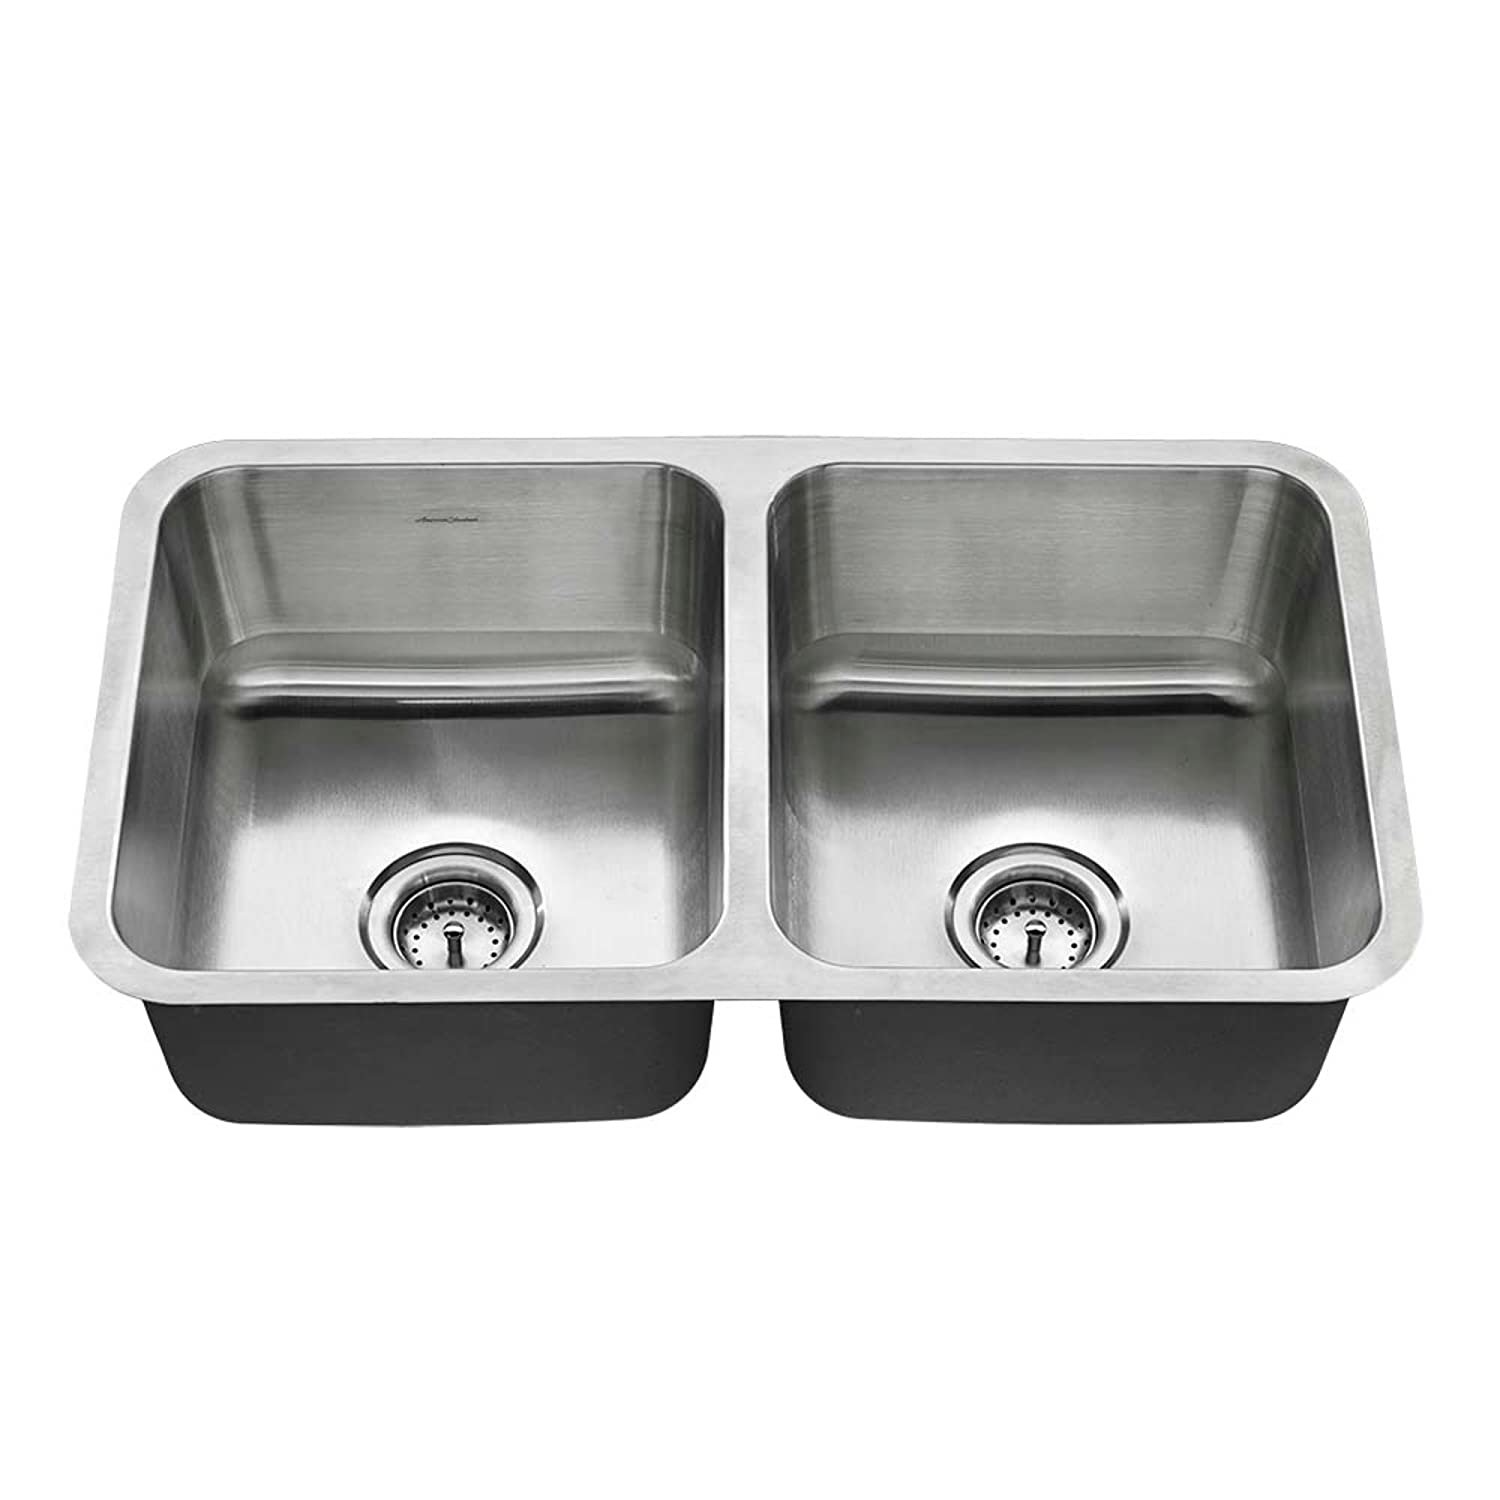 American Standard 18DB.9321800T.075 Undermount 32×18 Double Bowl Sink, Stainless Steel